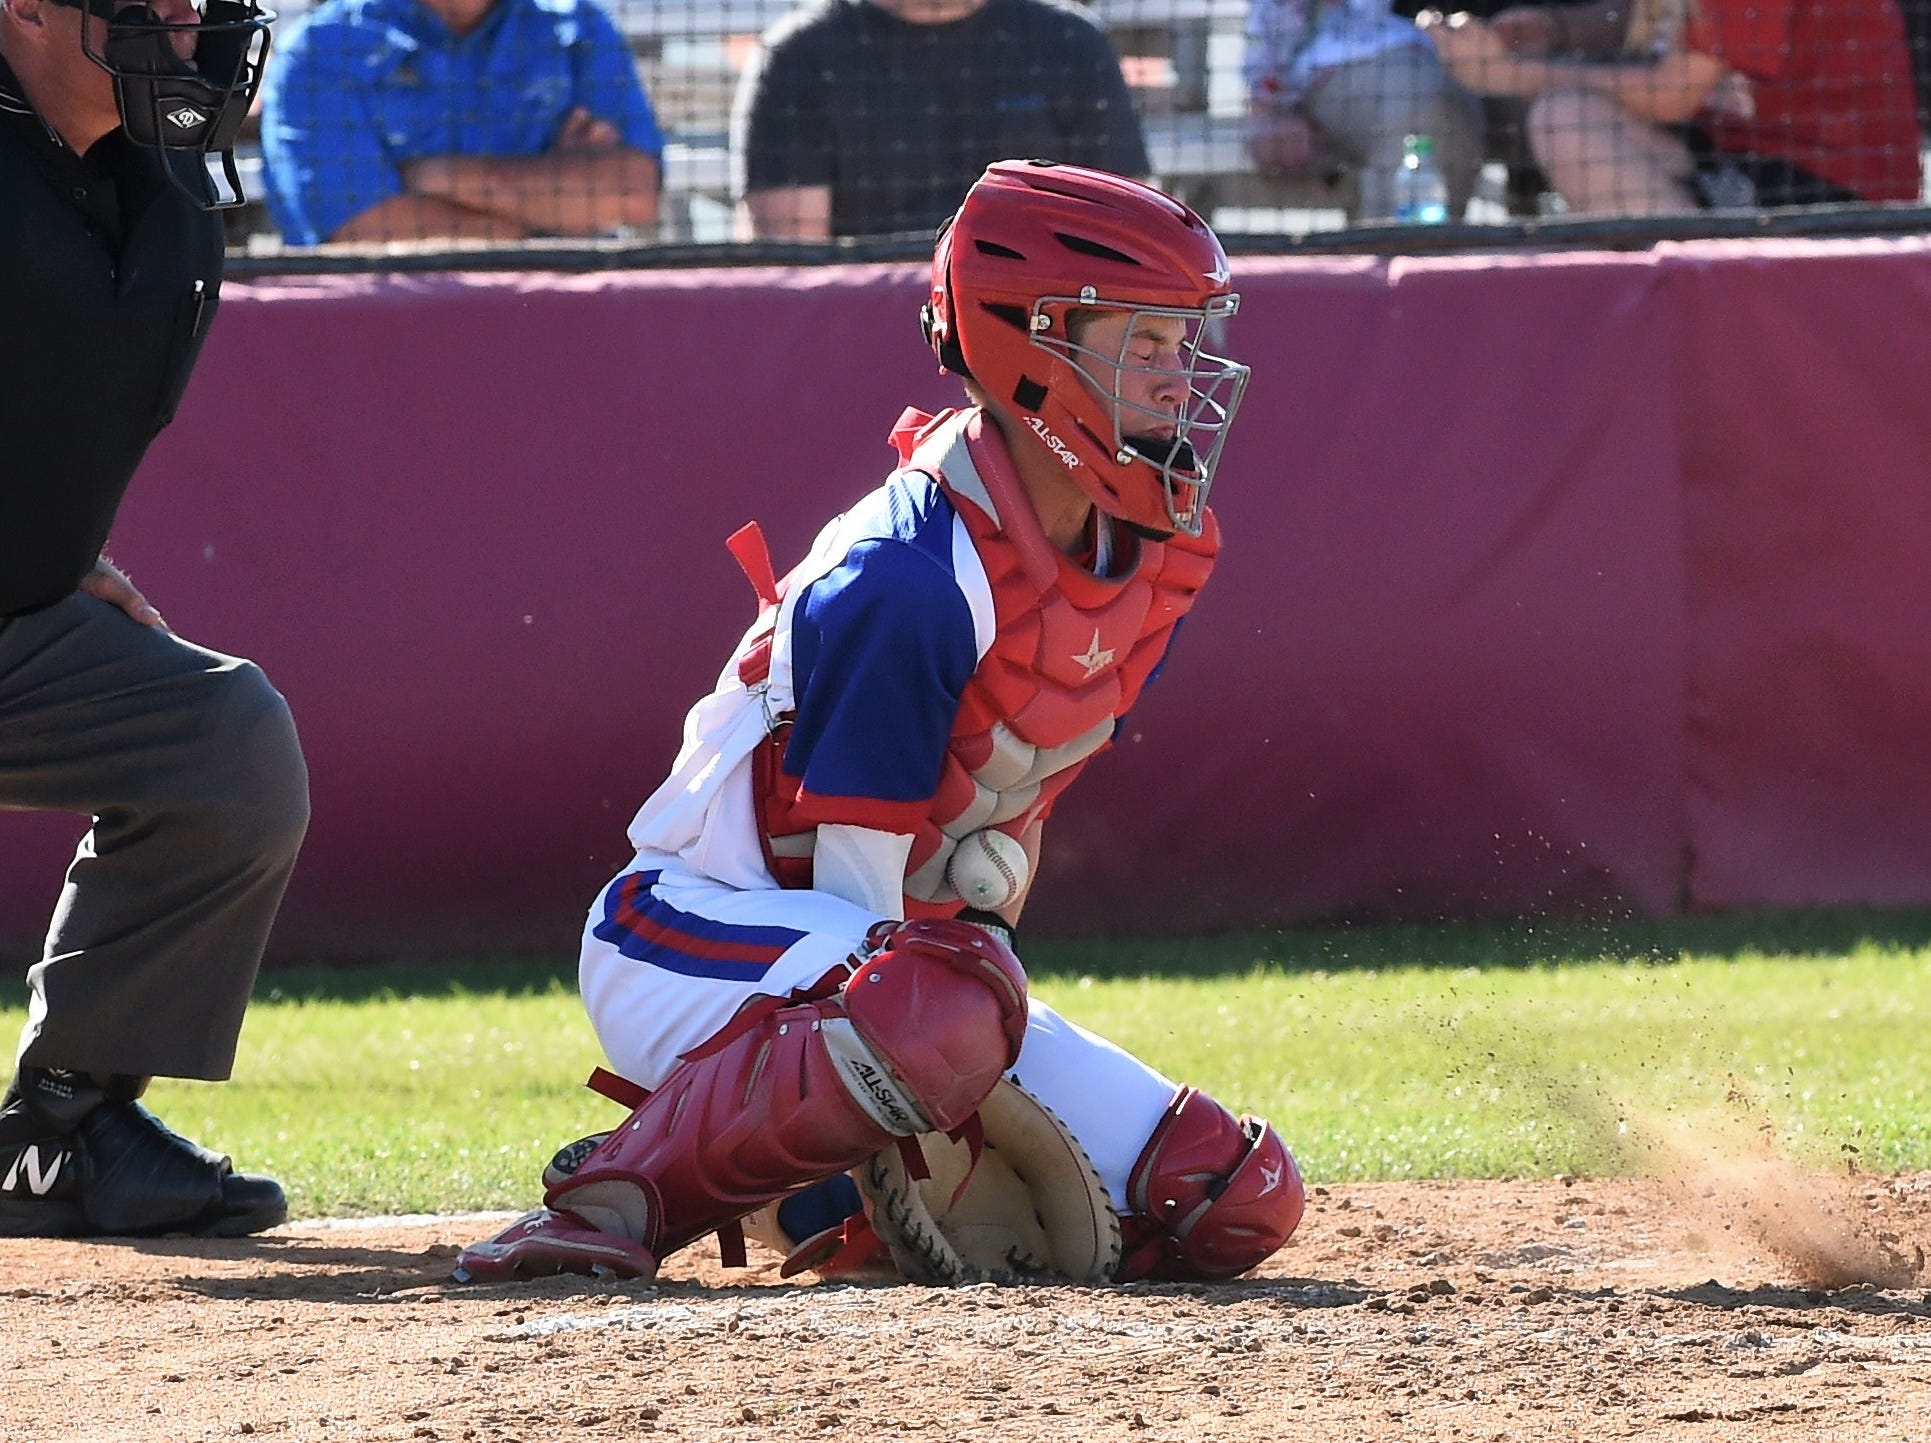 Cooper catcher Jacob Hummel (11) blocks a pitch in the dirt against Wylie at Cougar Field on Tuesday, April 9, 2019. Hummel had a hit, an RBI and walked twice as the Cougars fell 11-5.